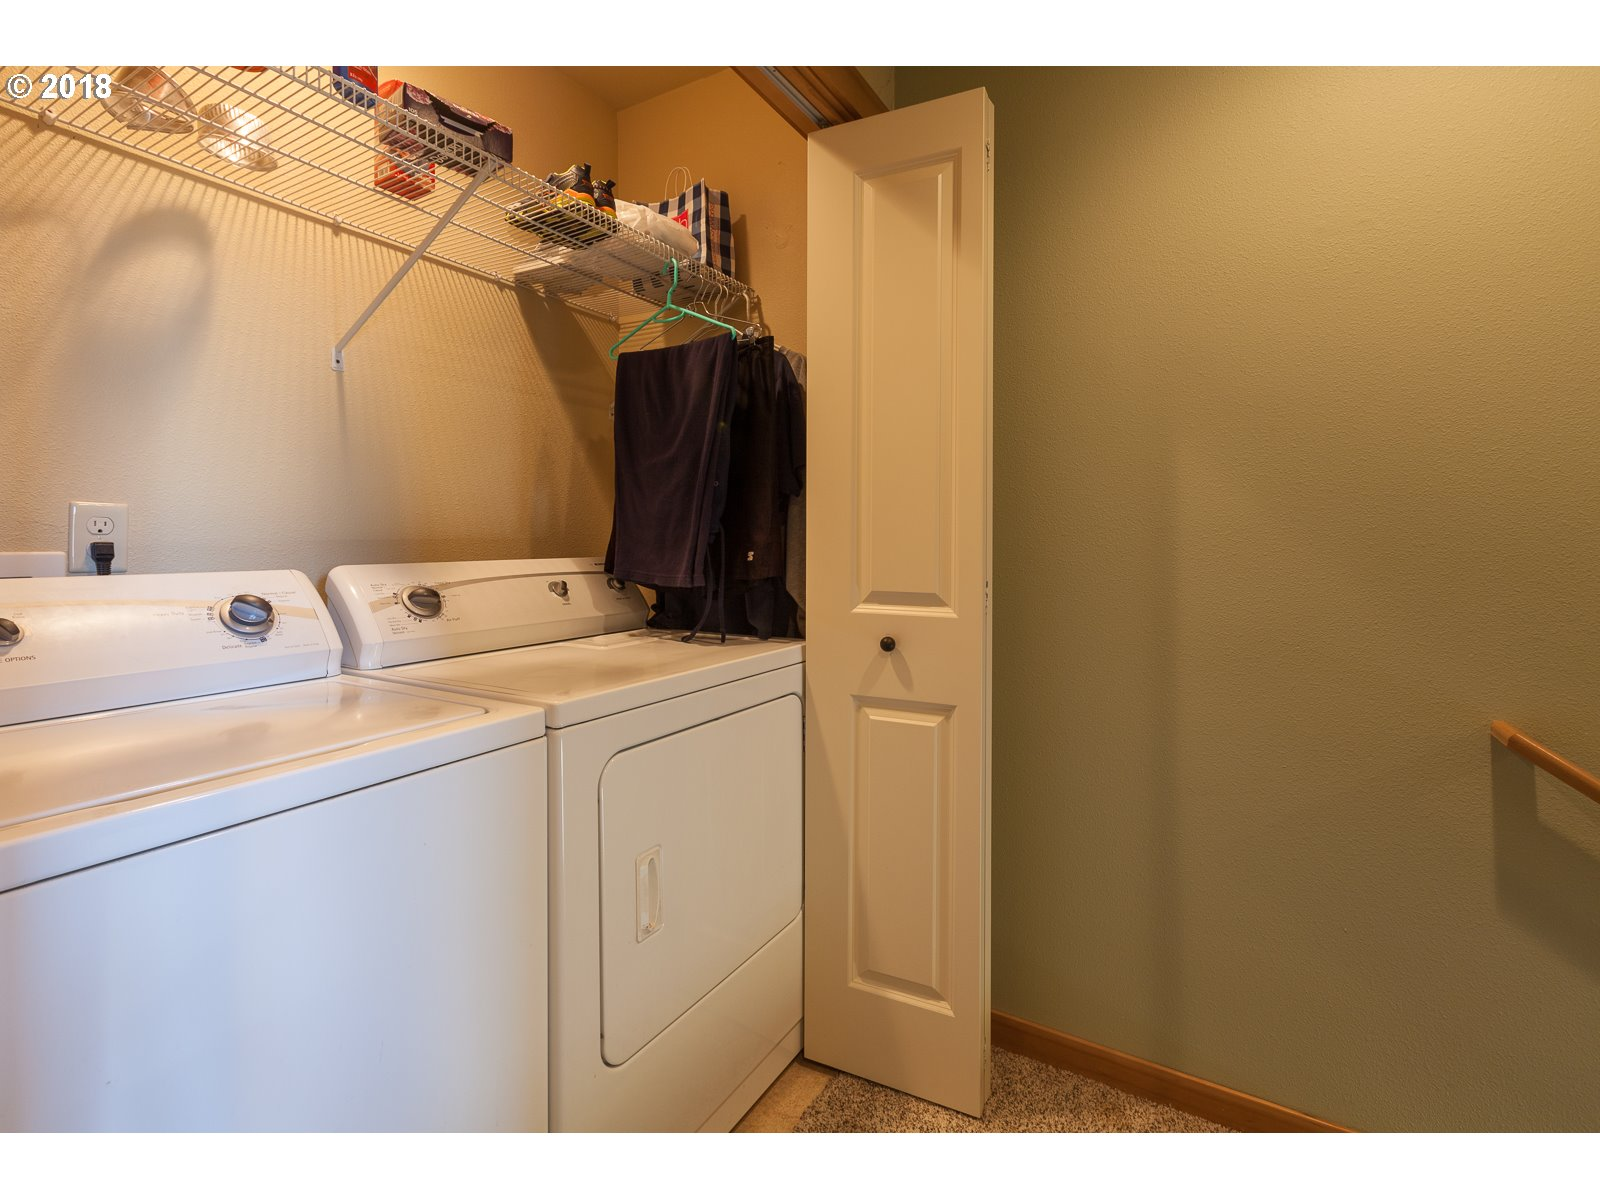 1307 LINCOLN ST Hood River, OR 97031 - MLS #: 18565106